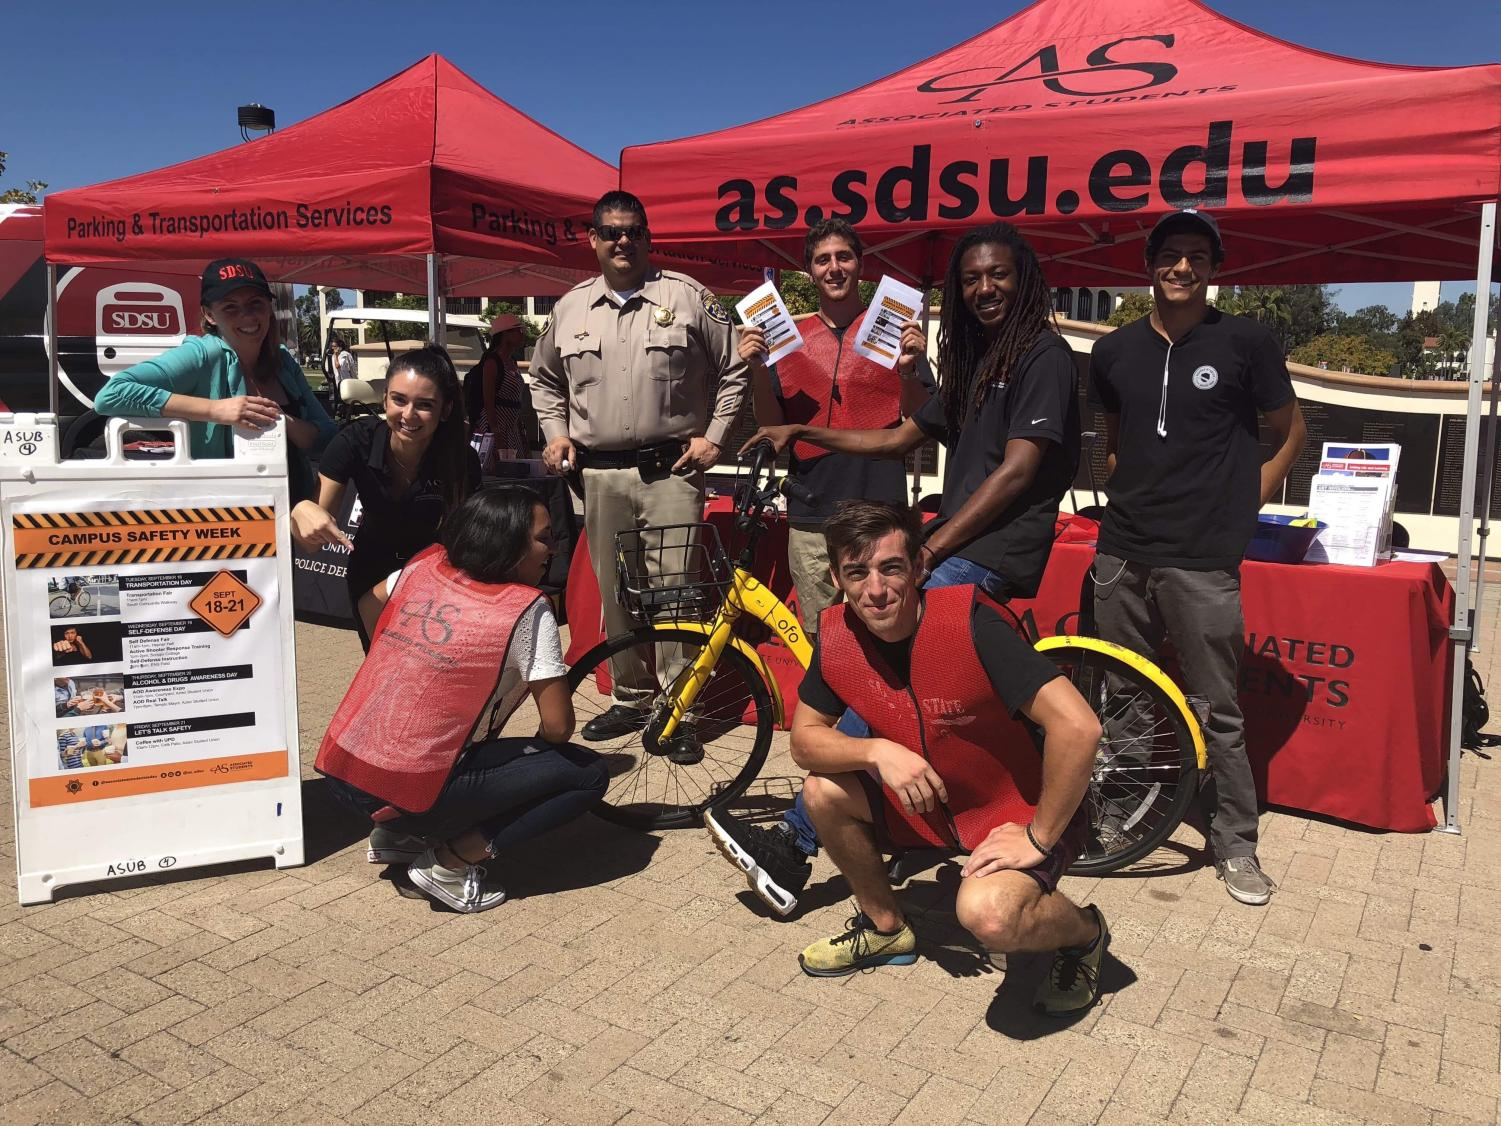 SDSU students gathered with SDSUPD and Associated Students for Campus Safety Week from Sept. 18 to 21.